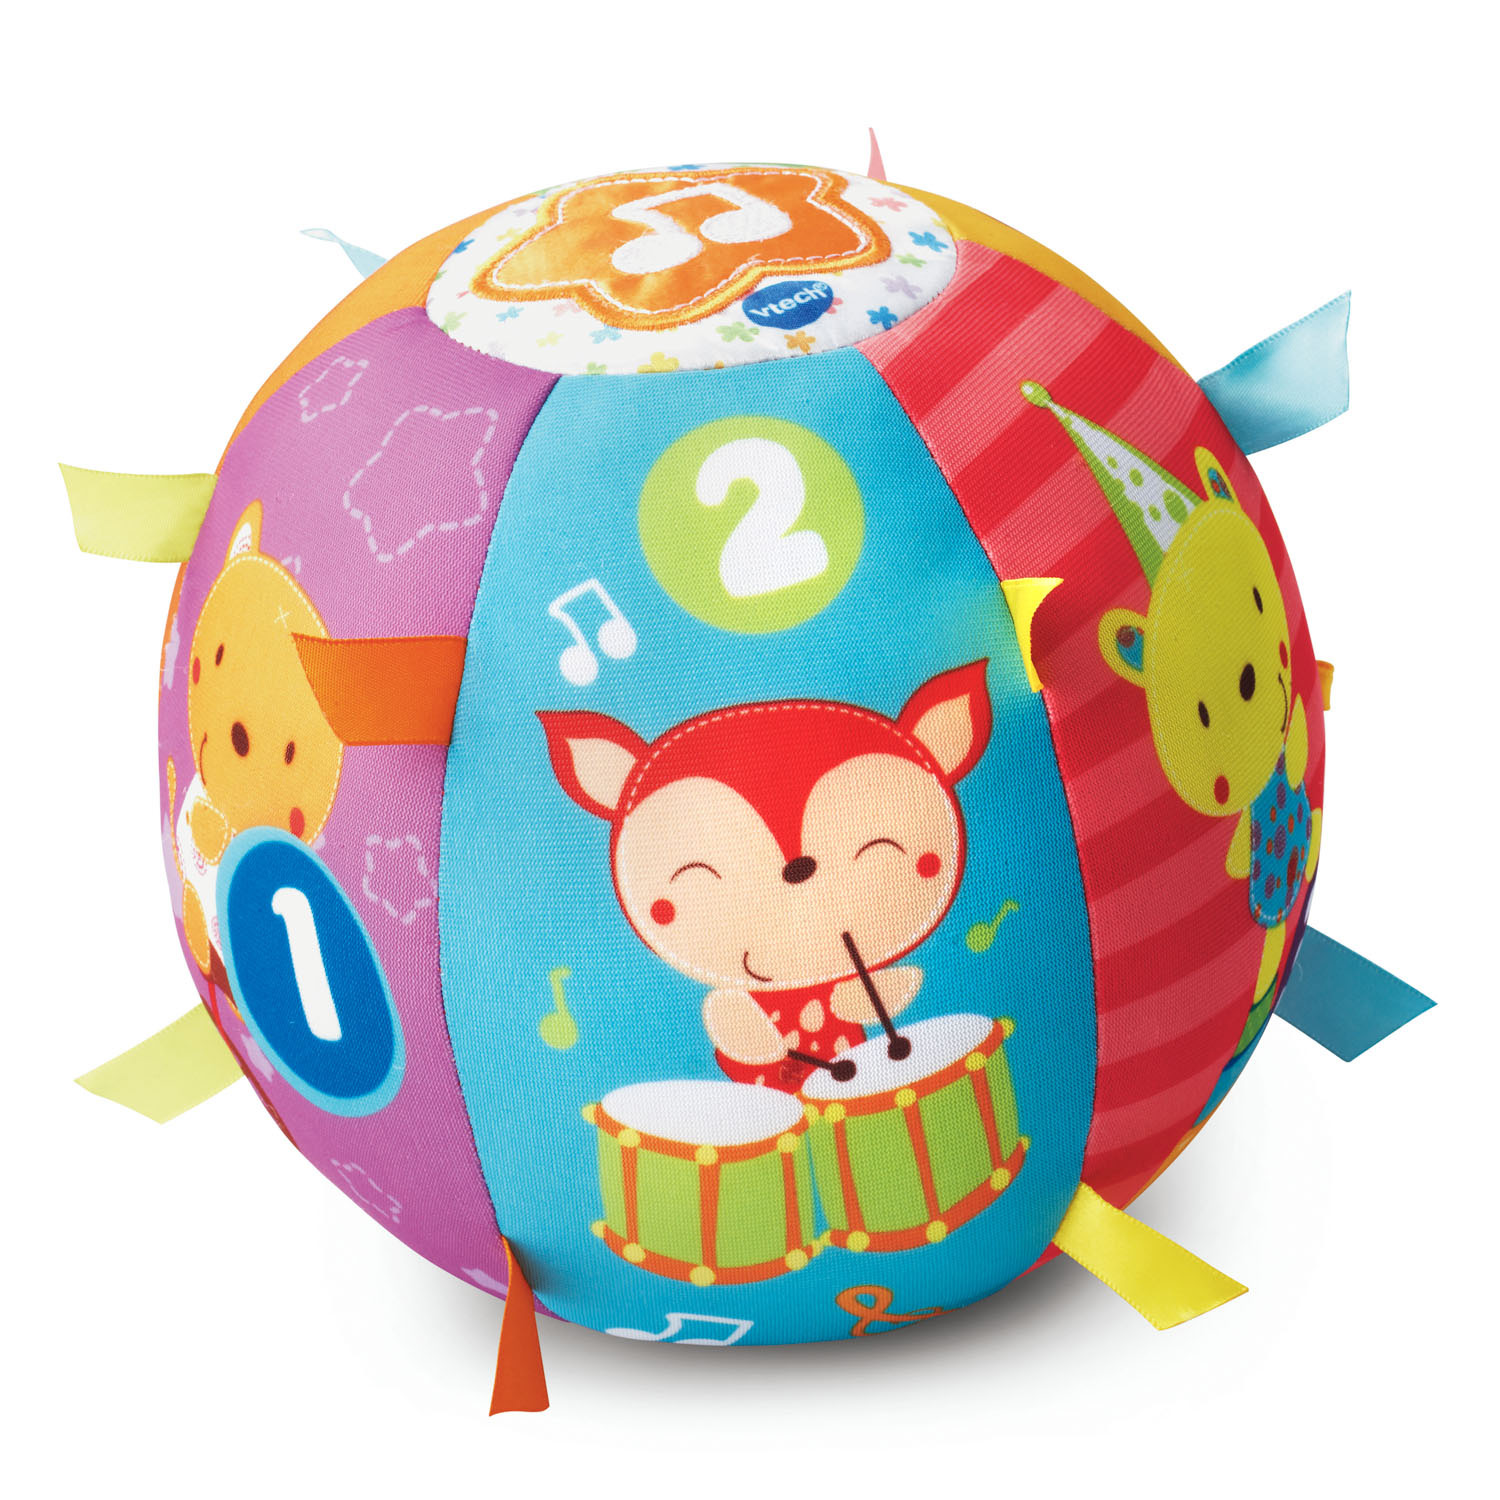 VTech s Acclaimed Baby Infant and Preschool Lines Grow with New